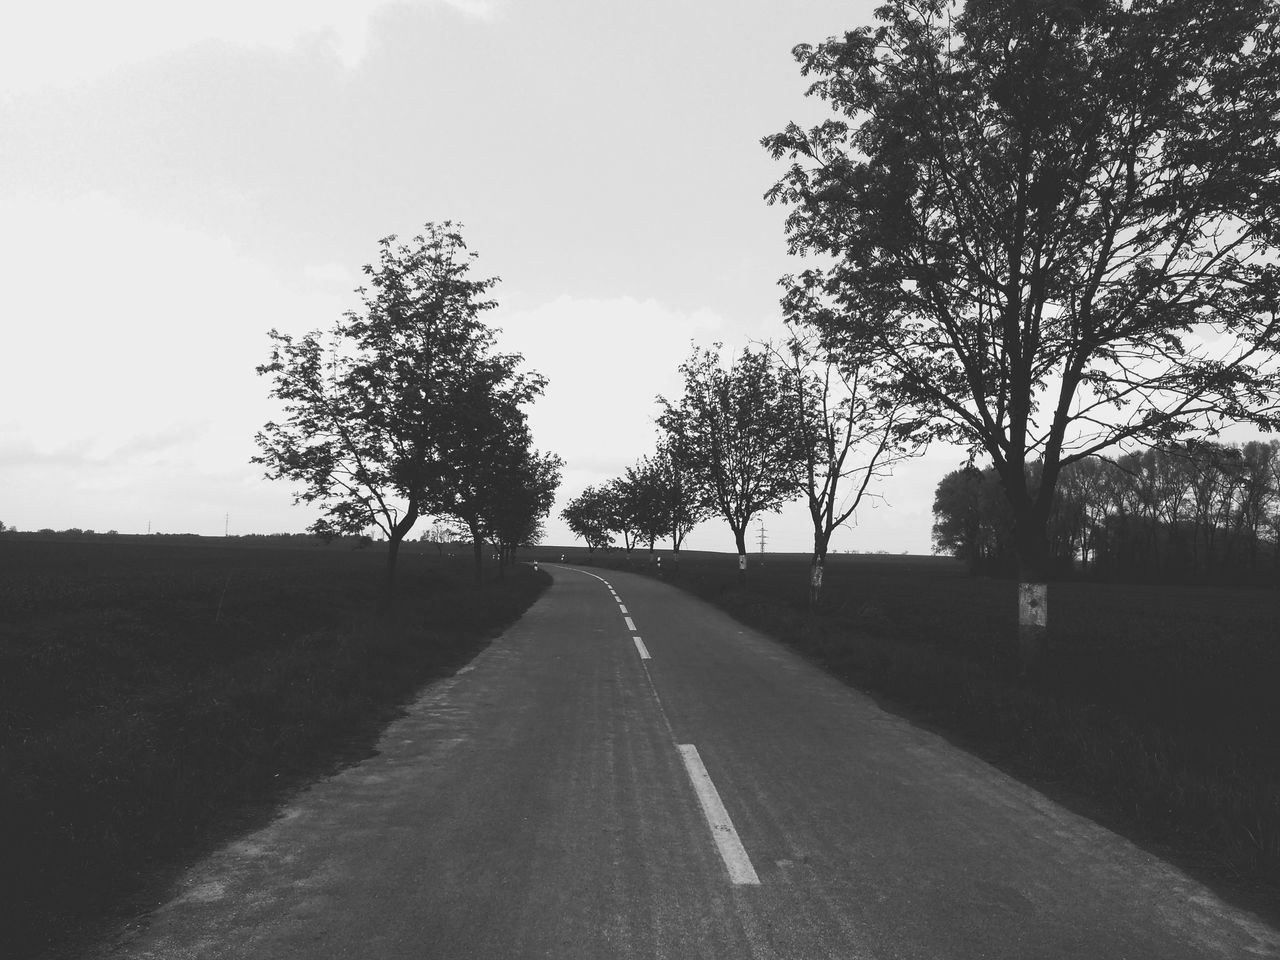 Way Road Landscape Day No People Tree 2017 The Way Forward Tree Sky Outdoors Nature First Eyeem Photo